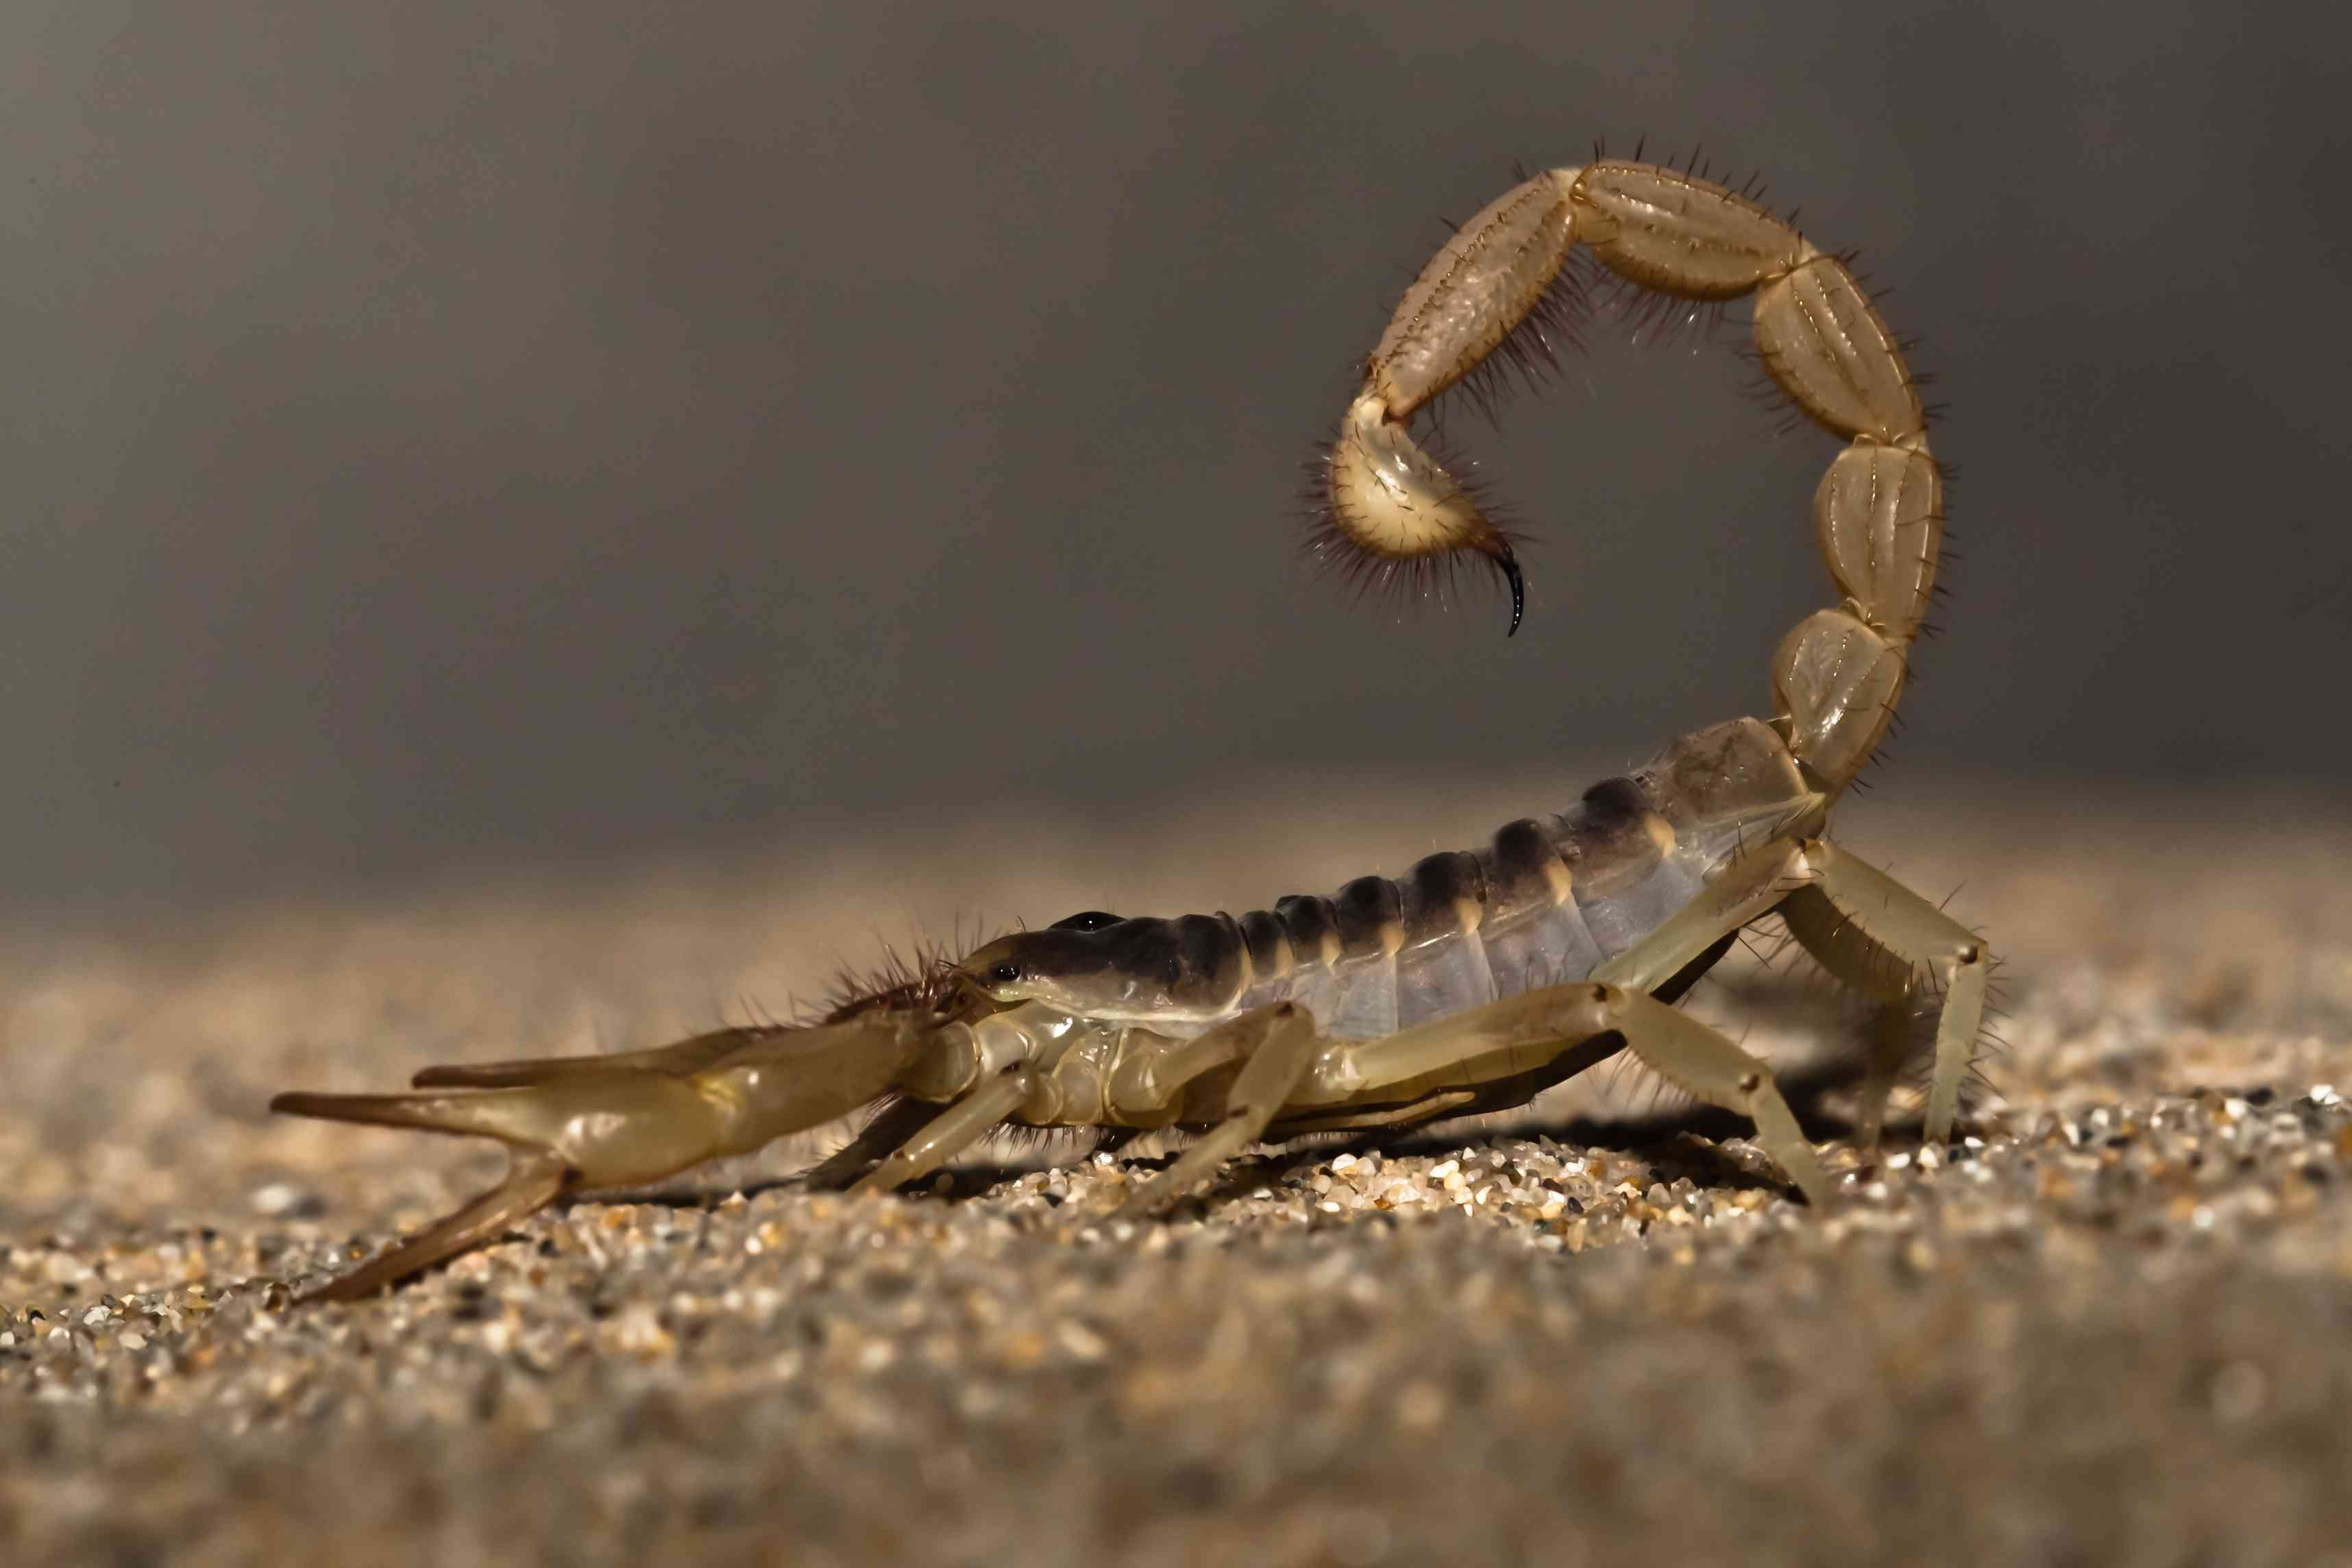 The Most Common Types of Scorpions in Arizona